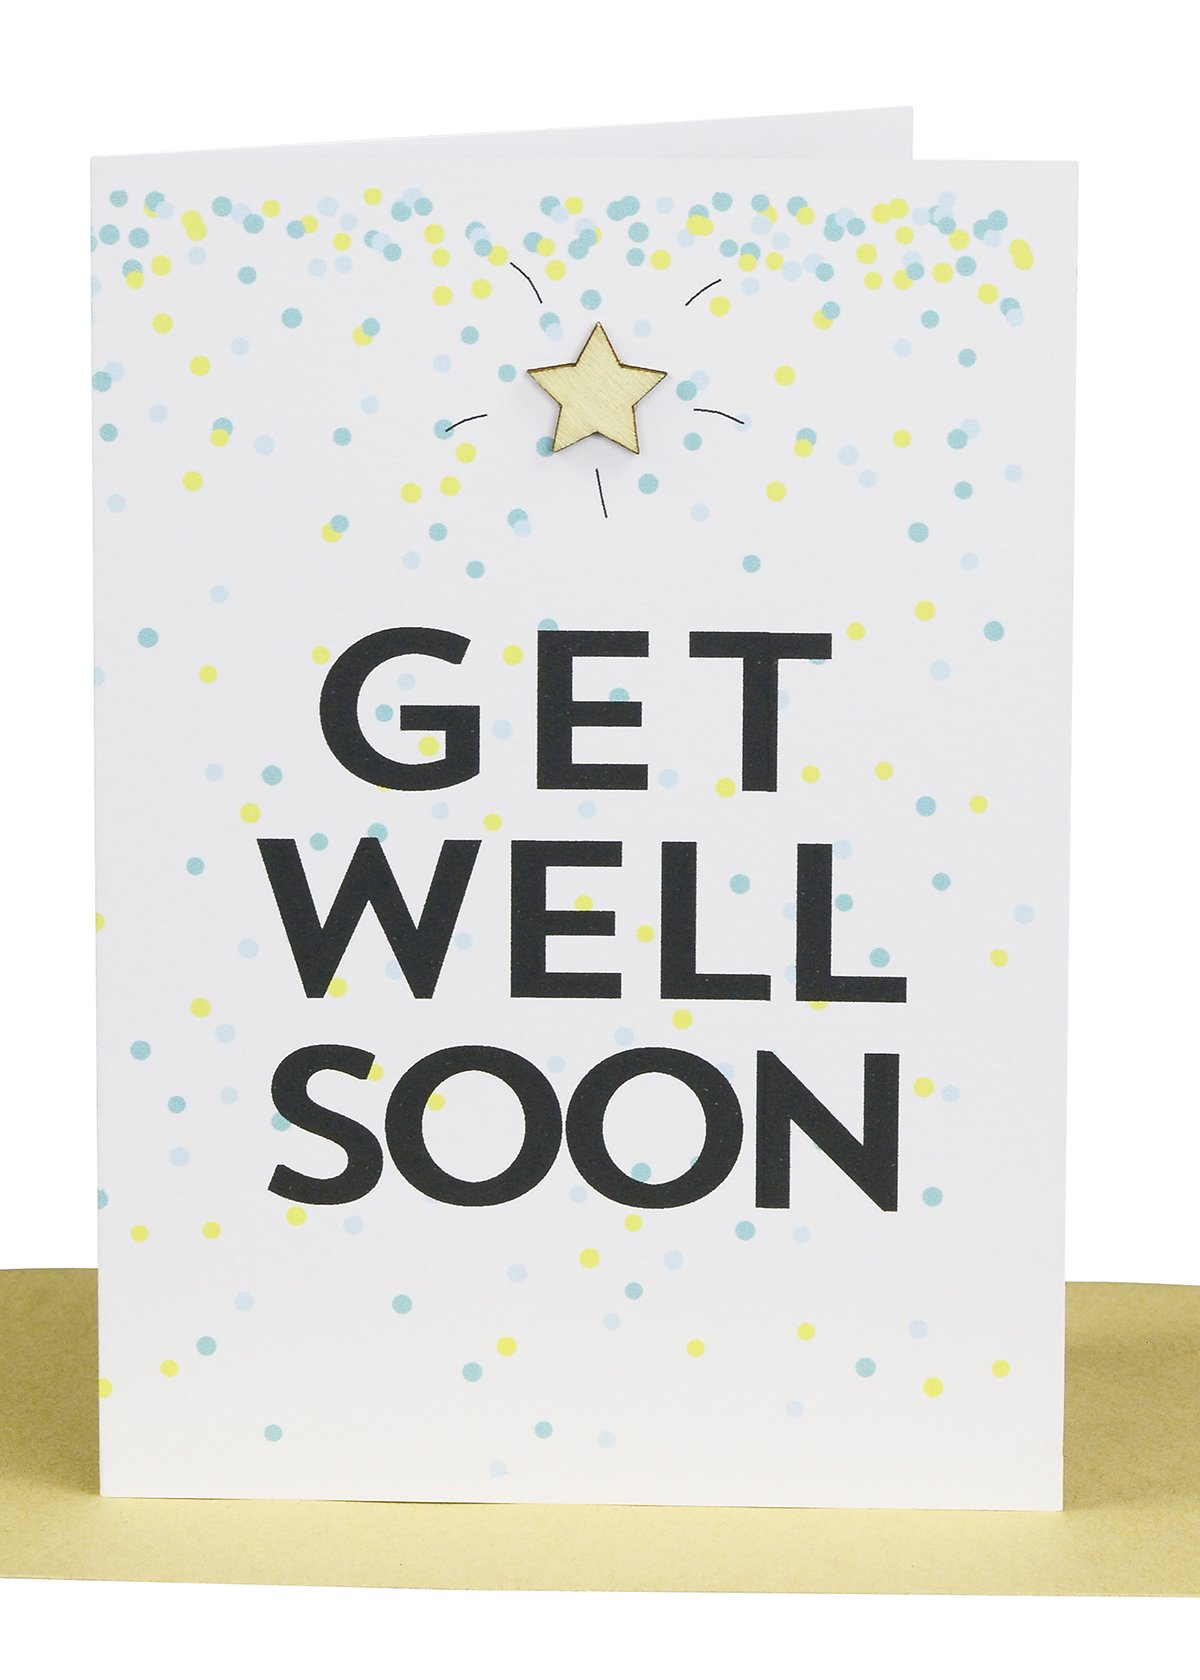 Get well greeting cards choice image greetings card design simple wholesale get well soon greeting card lils wholesale cards sydney m4hsunfo